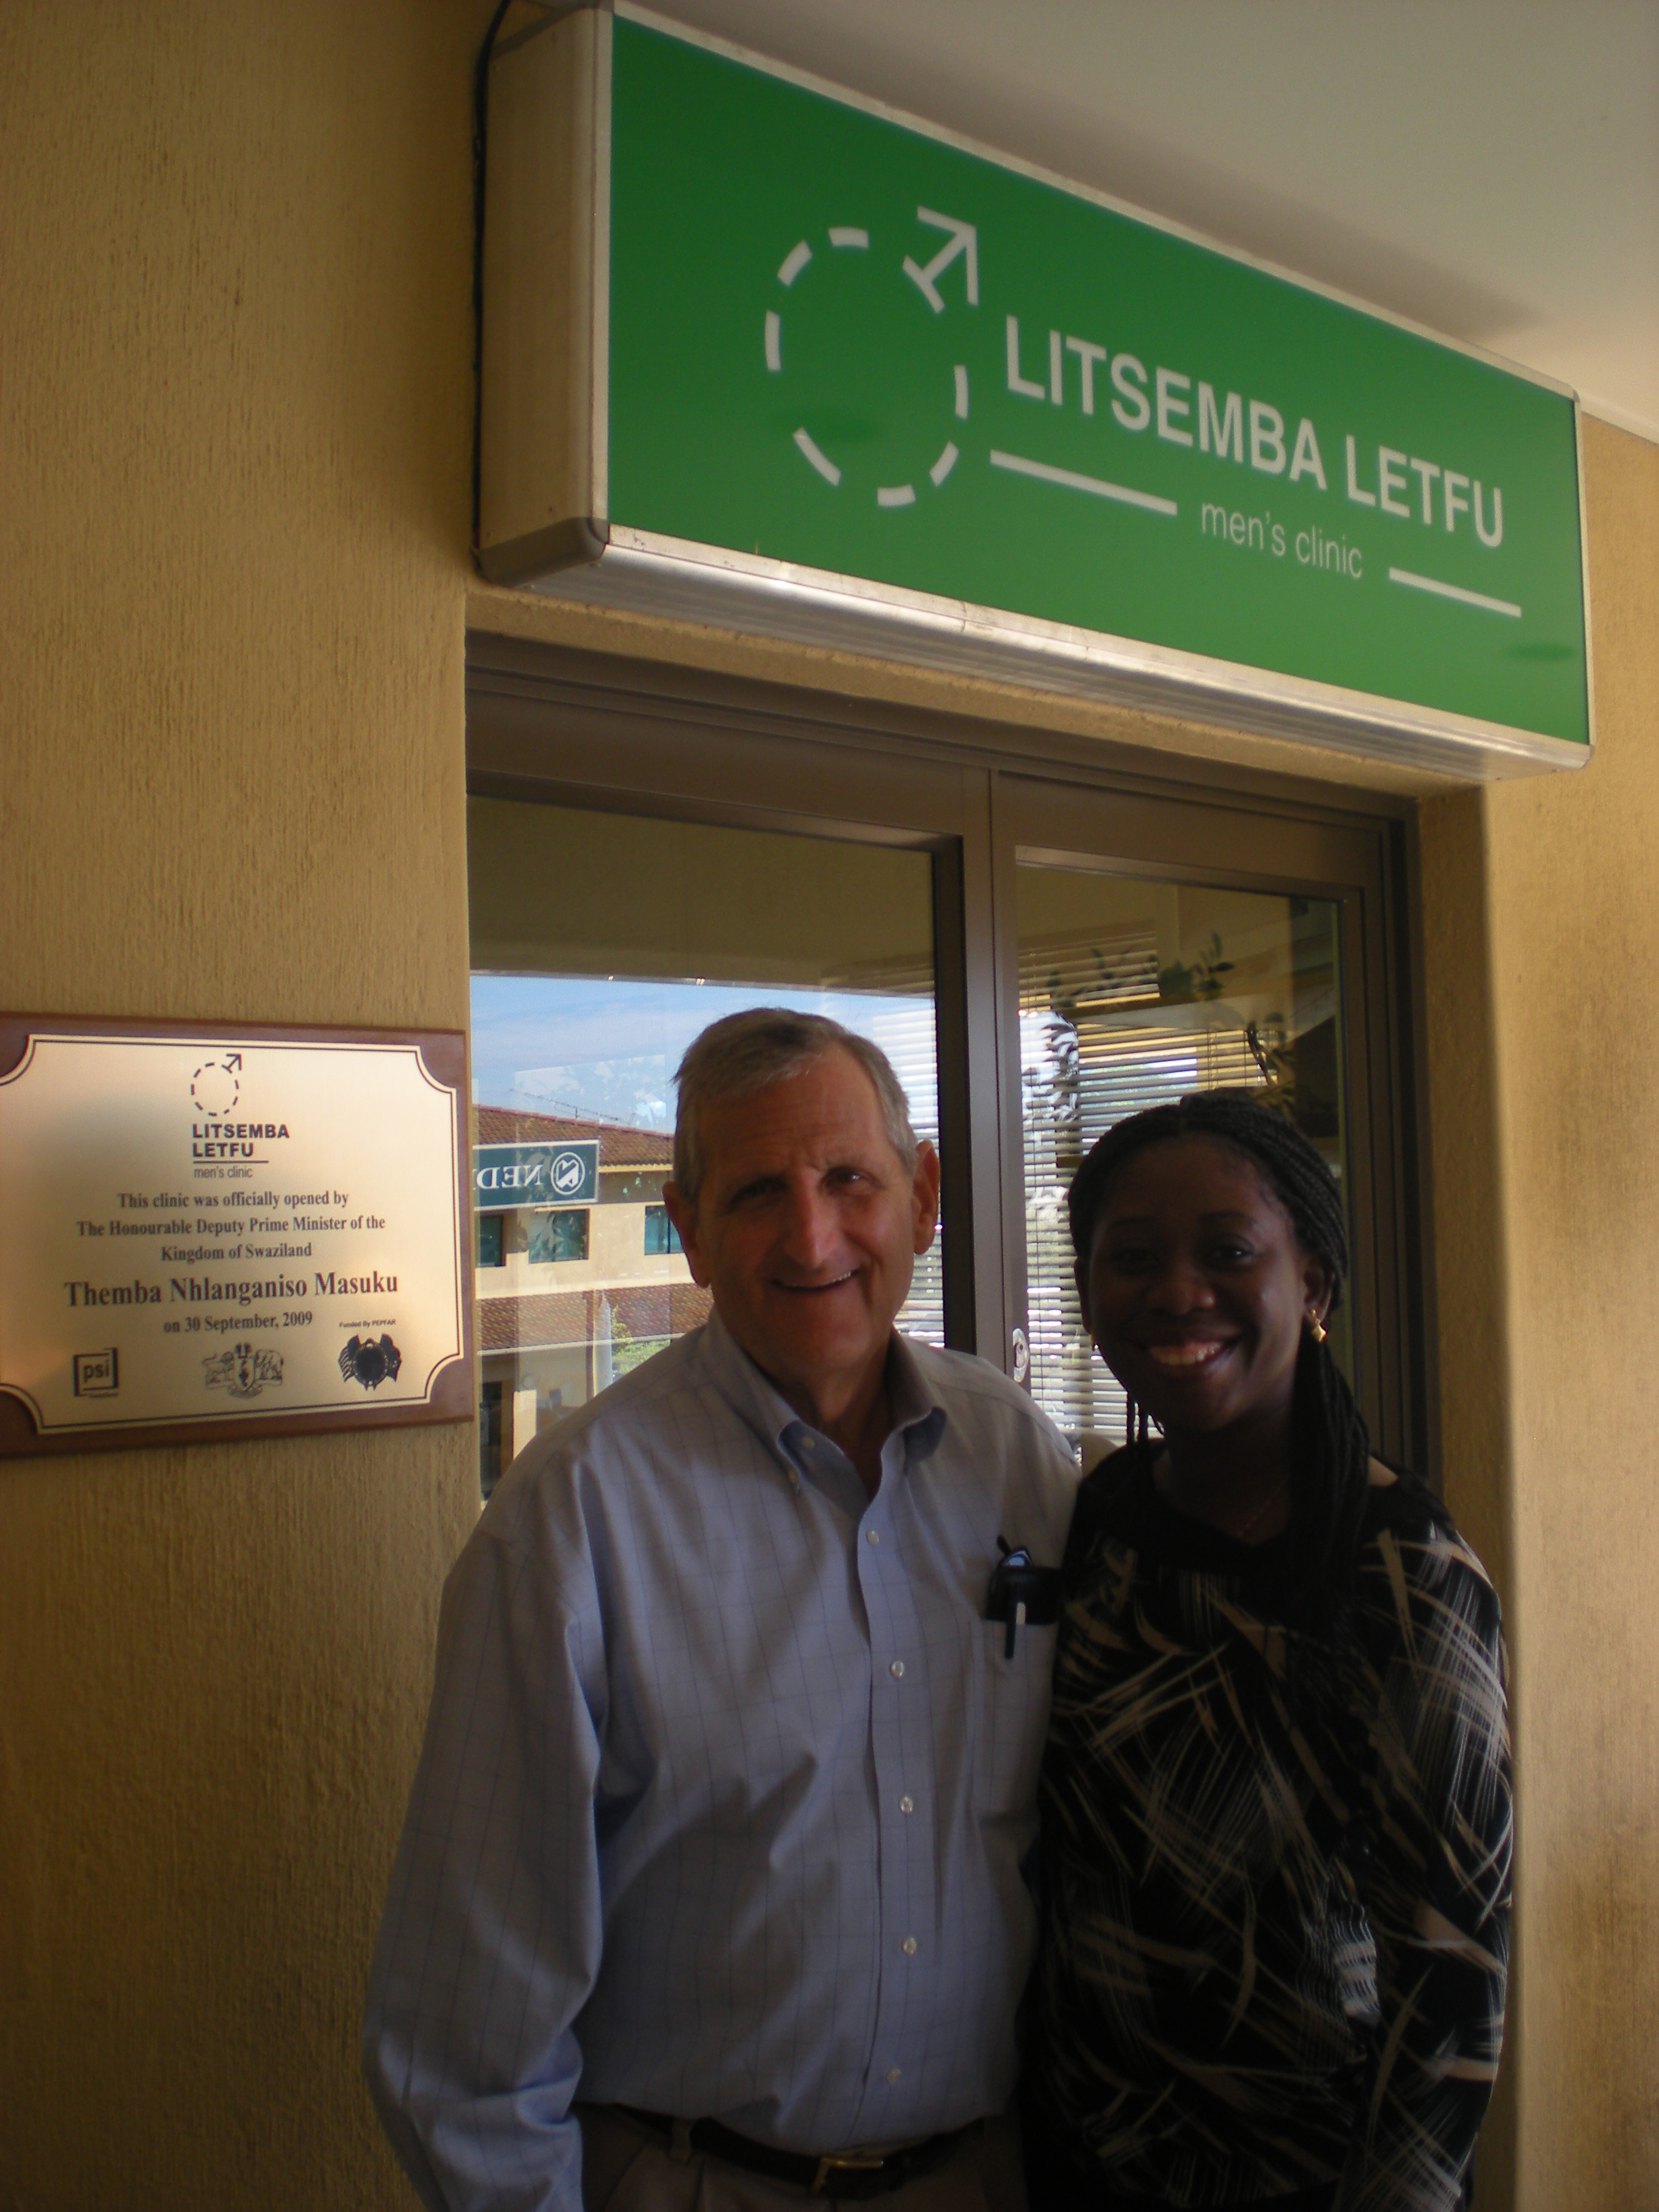 Doctors Ira Sharlip and Winifred Adams stand outside the Litsemba Letfu Clinic (Population Services International/PSI), where volunteers helped perform circumcisions